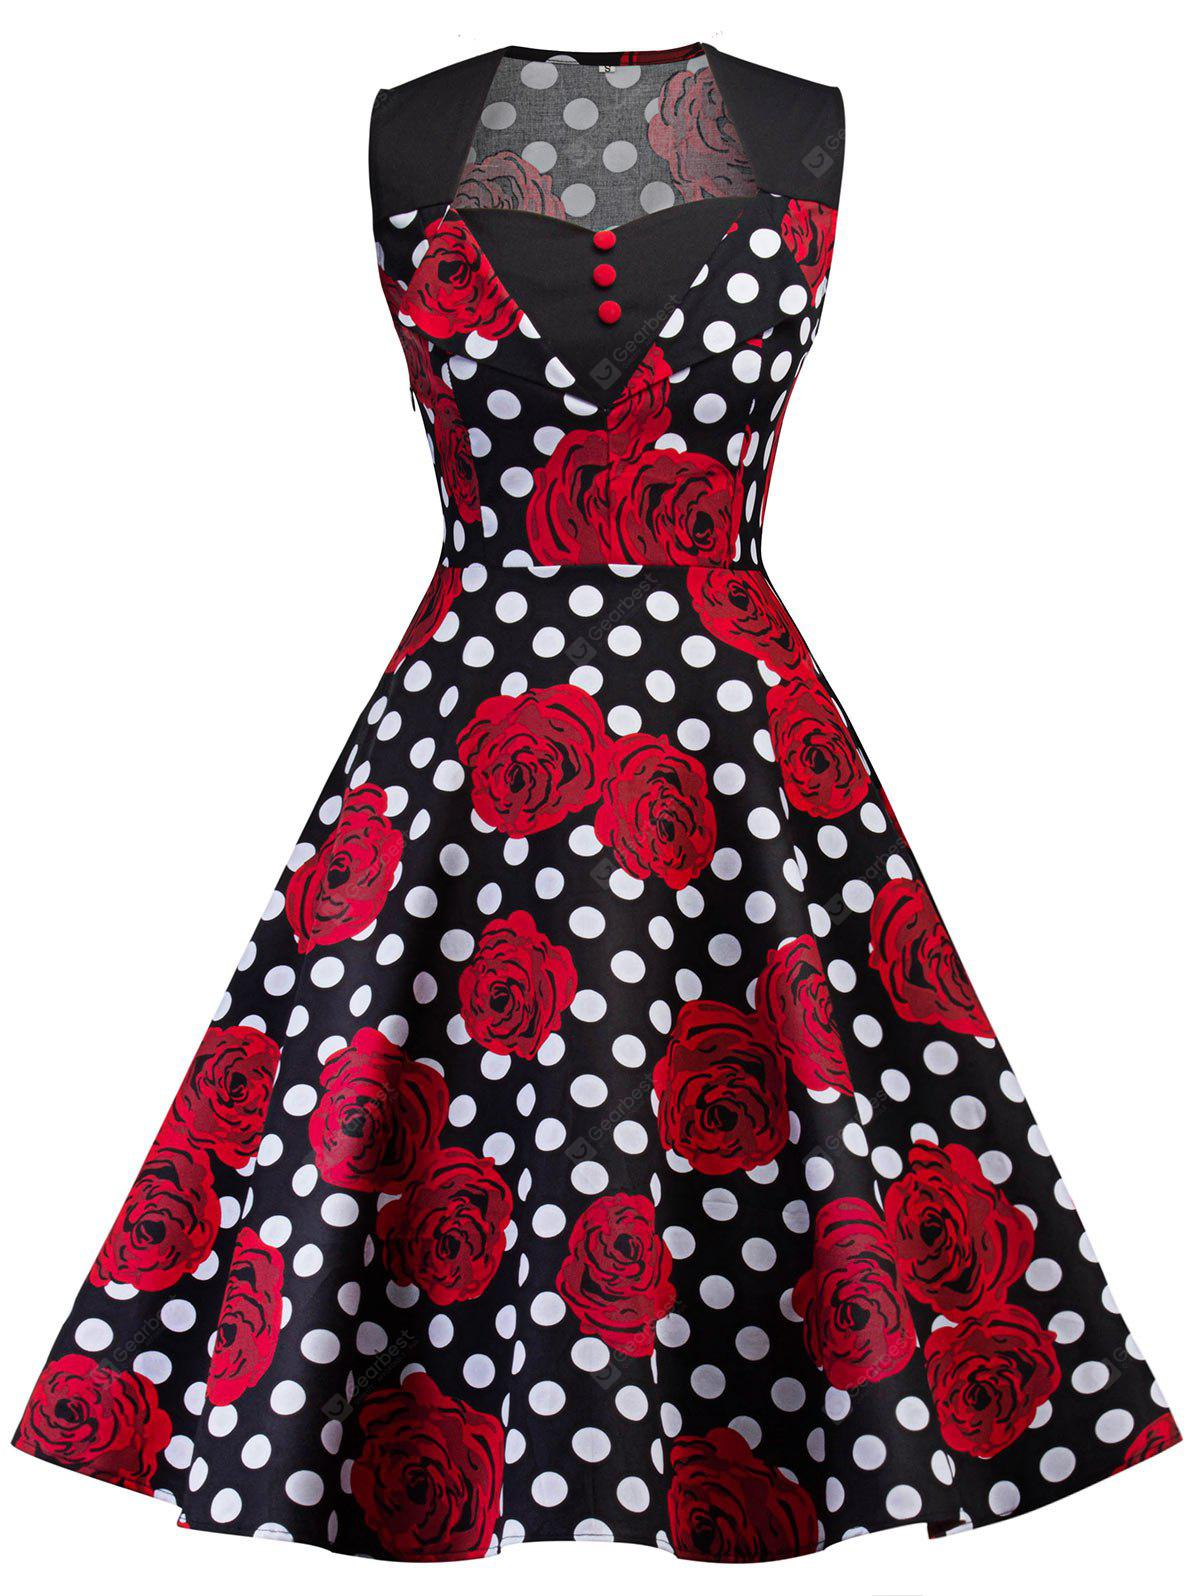 BLACK 2XL Vintage Floral Print Polka Dot Pin Up Dress